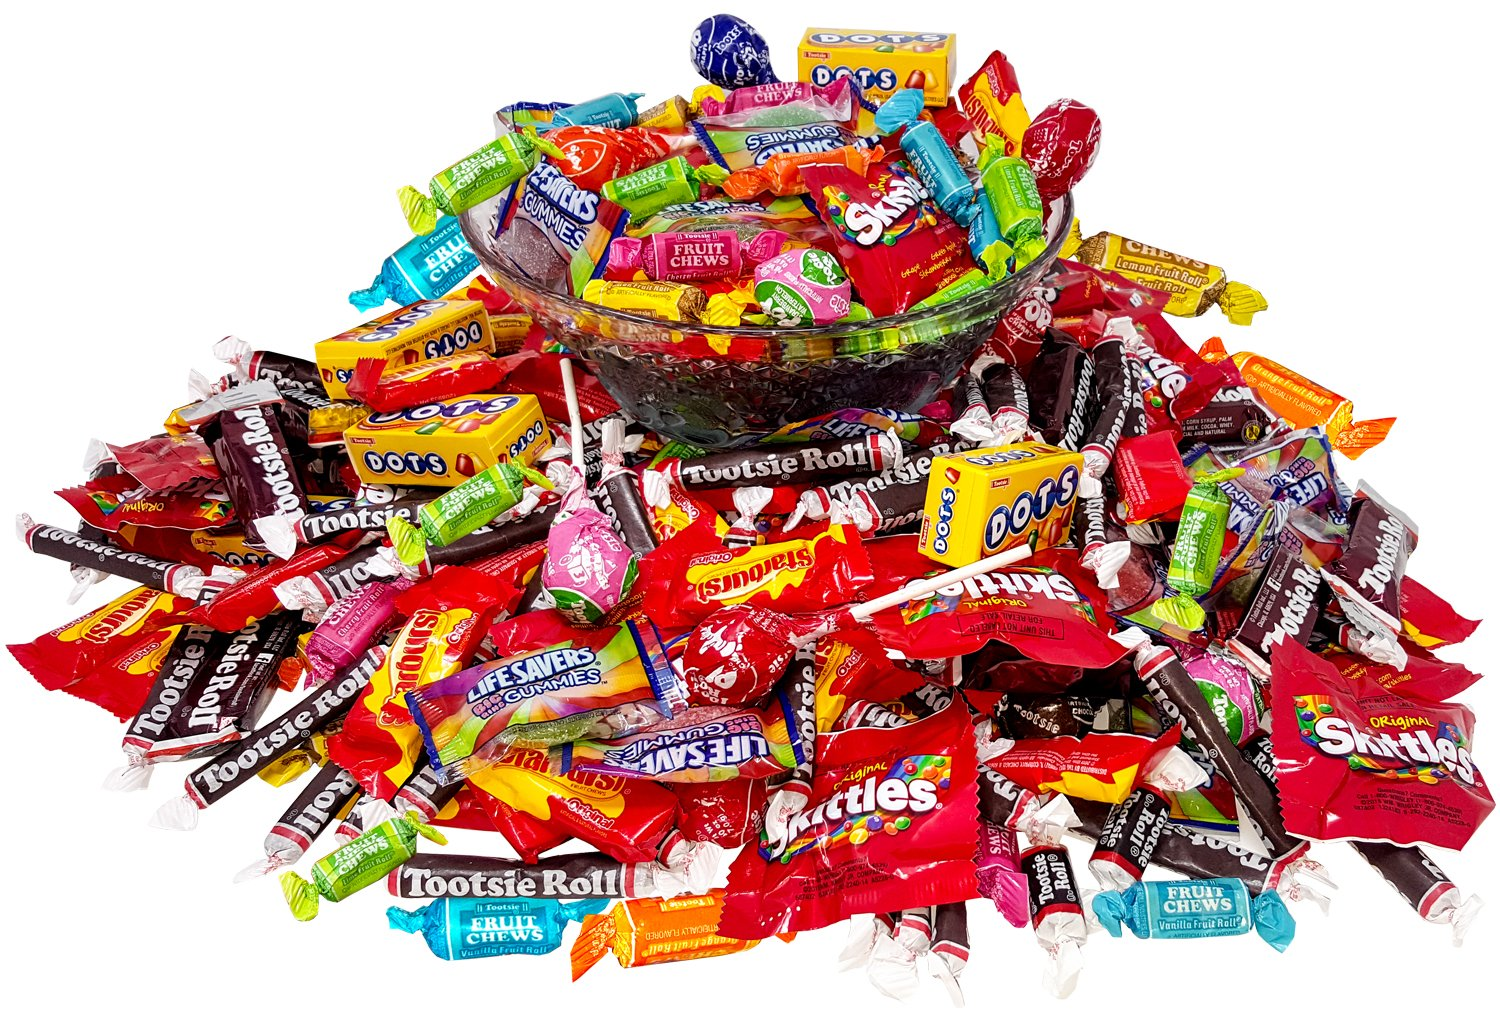 Assorted American Candy Classics Over 13 Favorite Flavors 11 Lb Variety Bulk Value Pack Skittles Tootsies Starburst Lifesavers Gummies And More (176 oz) by Assortit (Image #5)